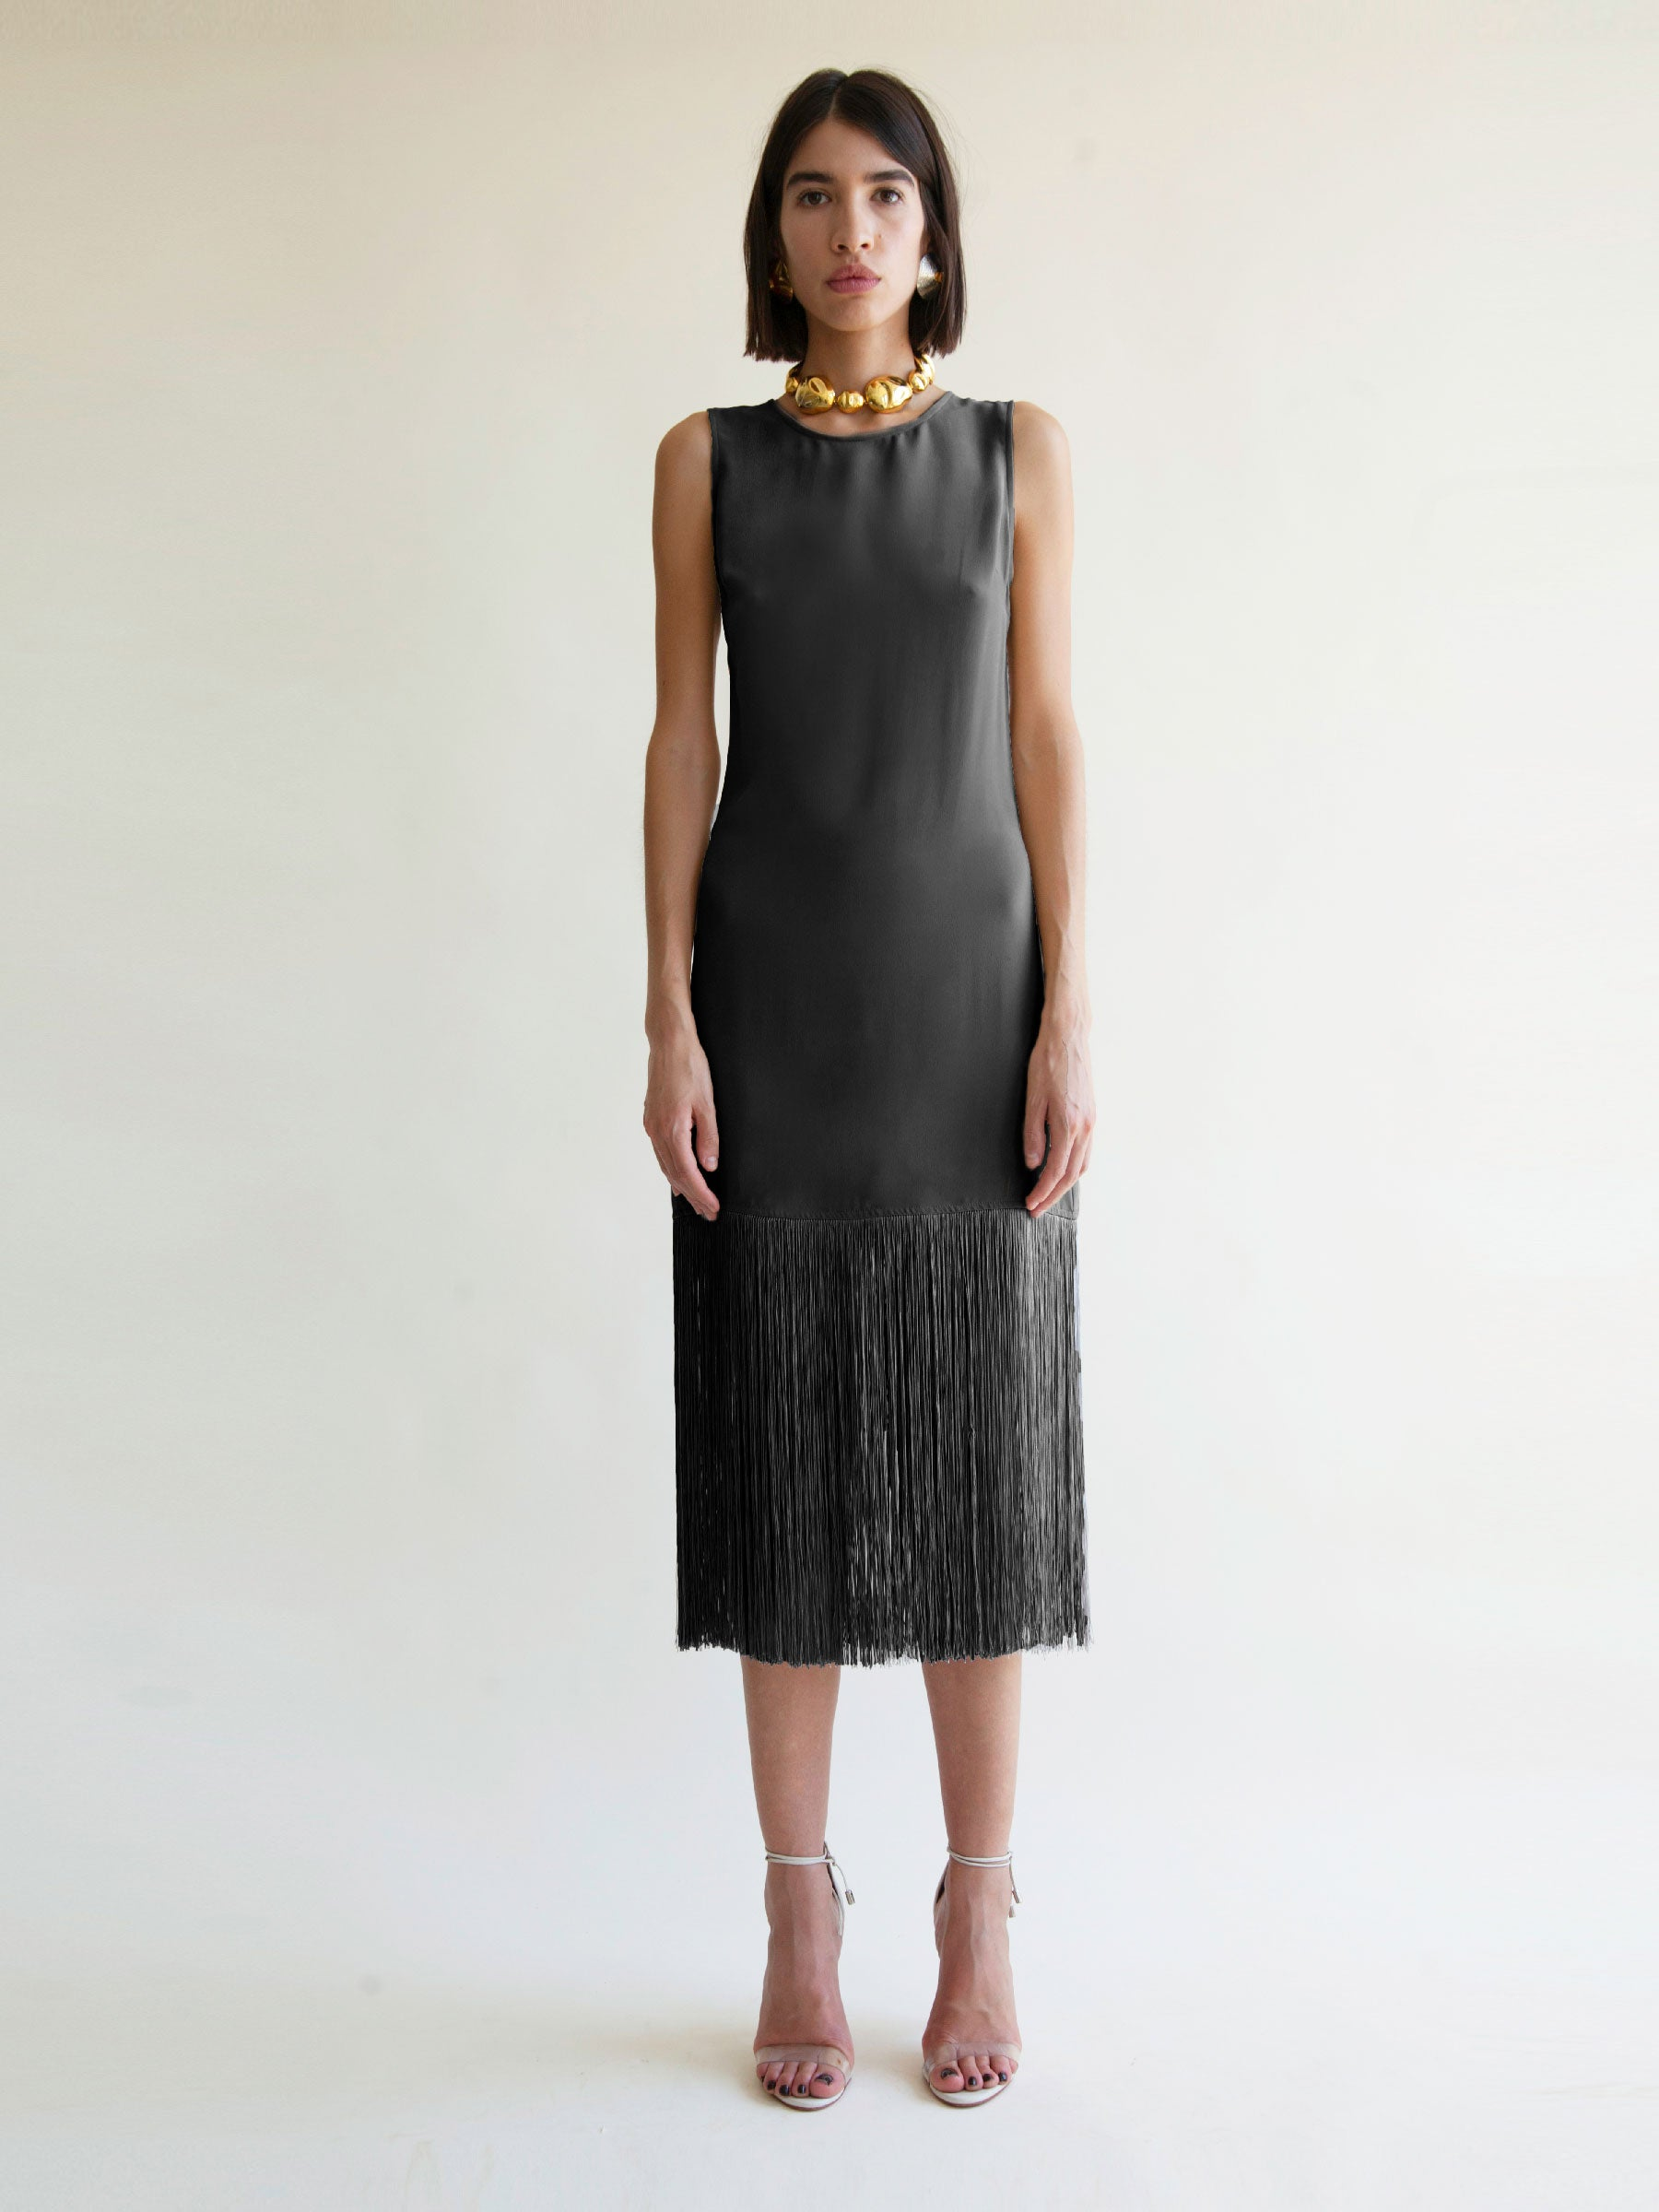 Ramblas Fringe Dress in Black [Pre-Order]